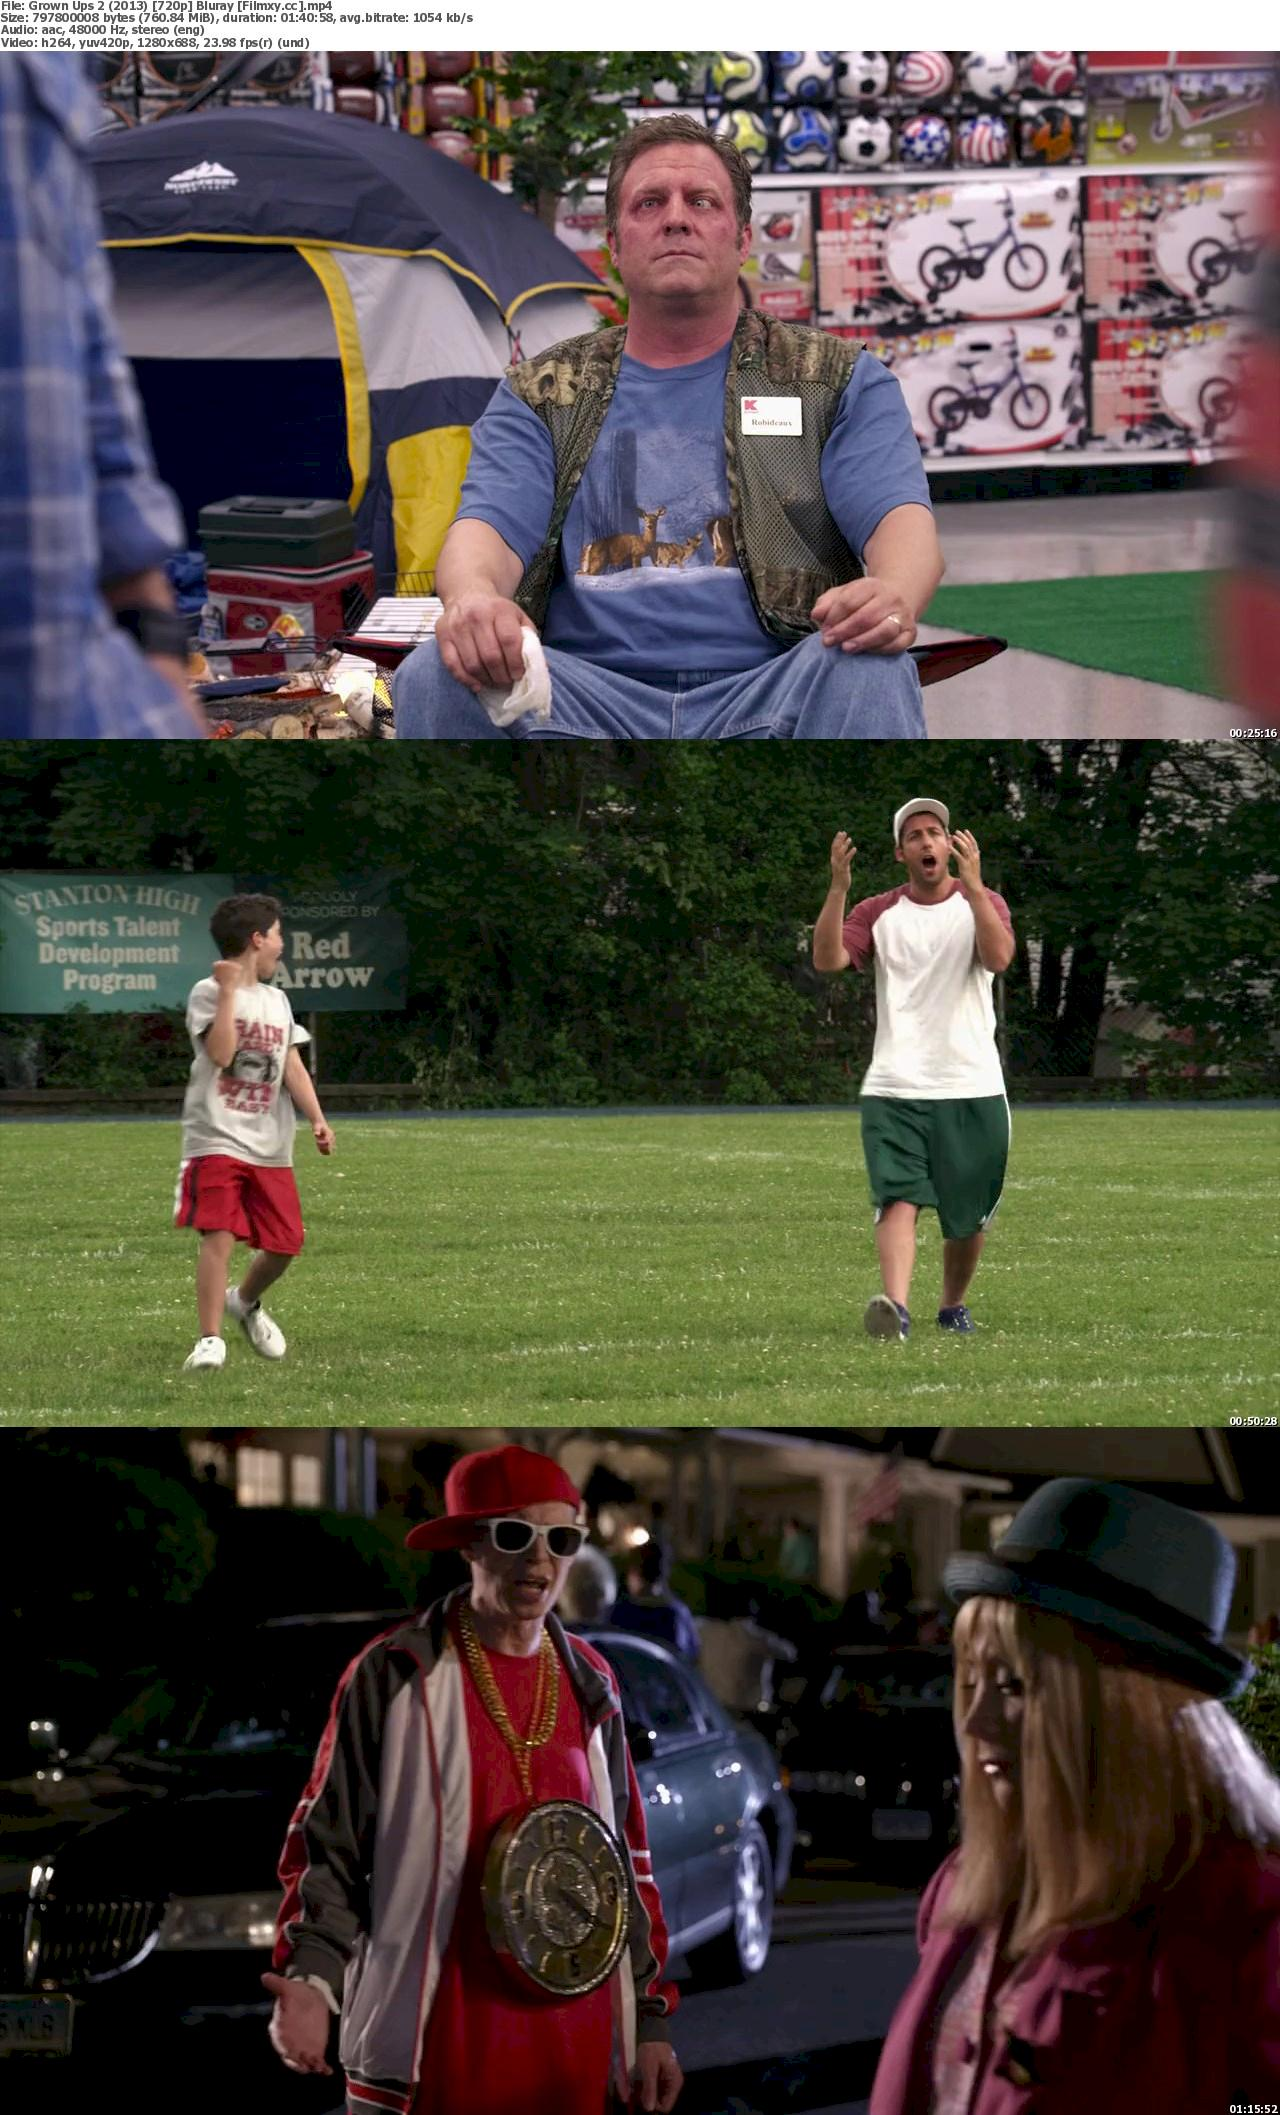 Grown Ups 2 (2013) 720p & 1080p Bluray Free Download 720p Screenshot